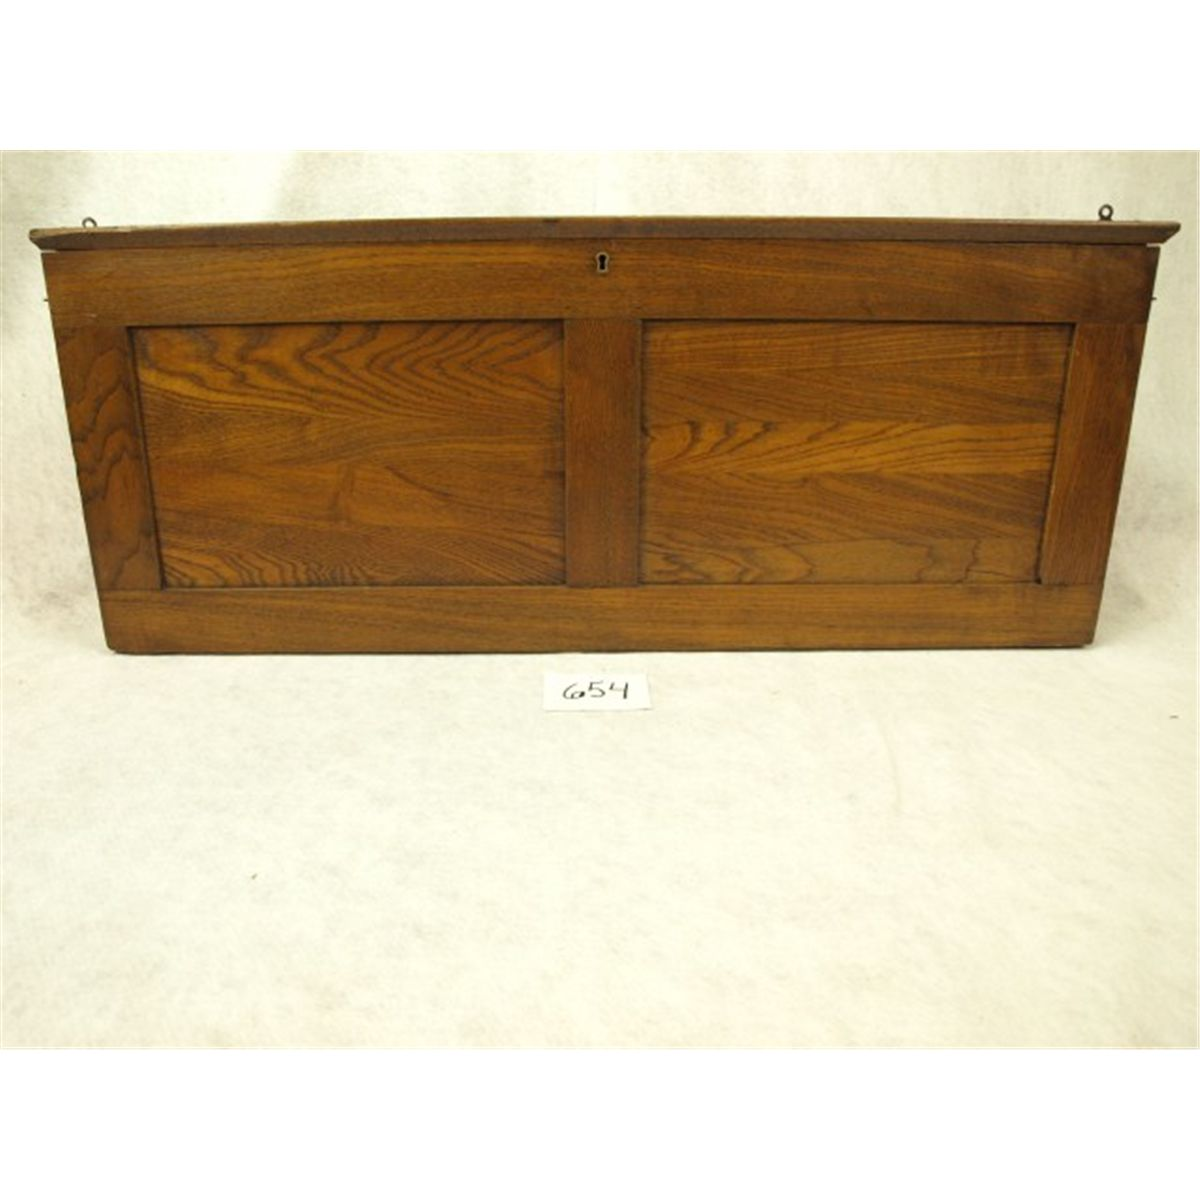 Antique oak cased map set with 8 pull down maps